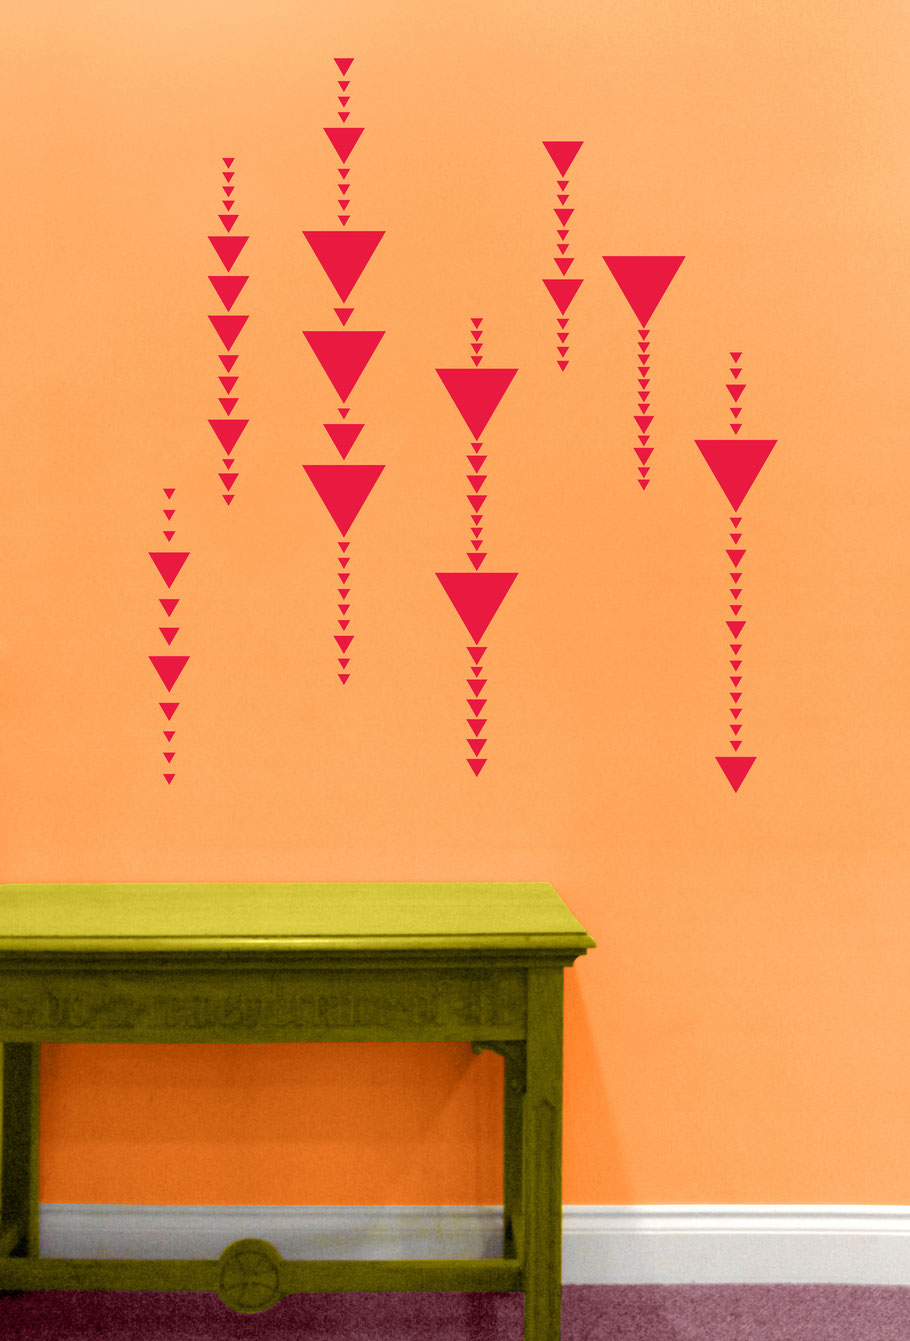 Mixed pack sizes of vinyl triangles to make your own interesting designs. They come in many colours and stick on flat smooth surfaces. Great for being spontaneously creative.